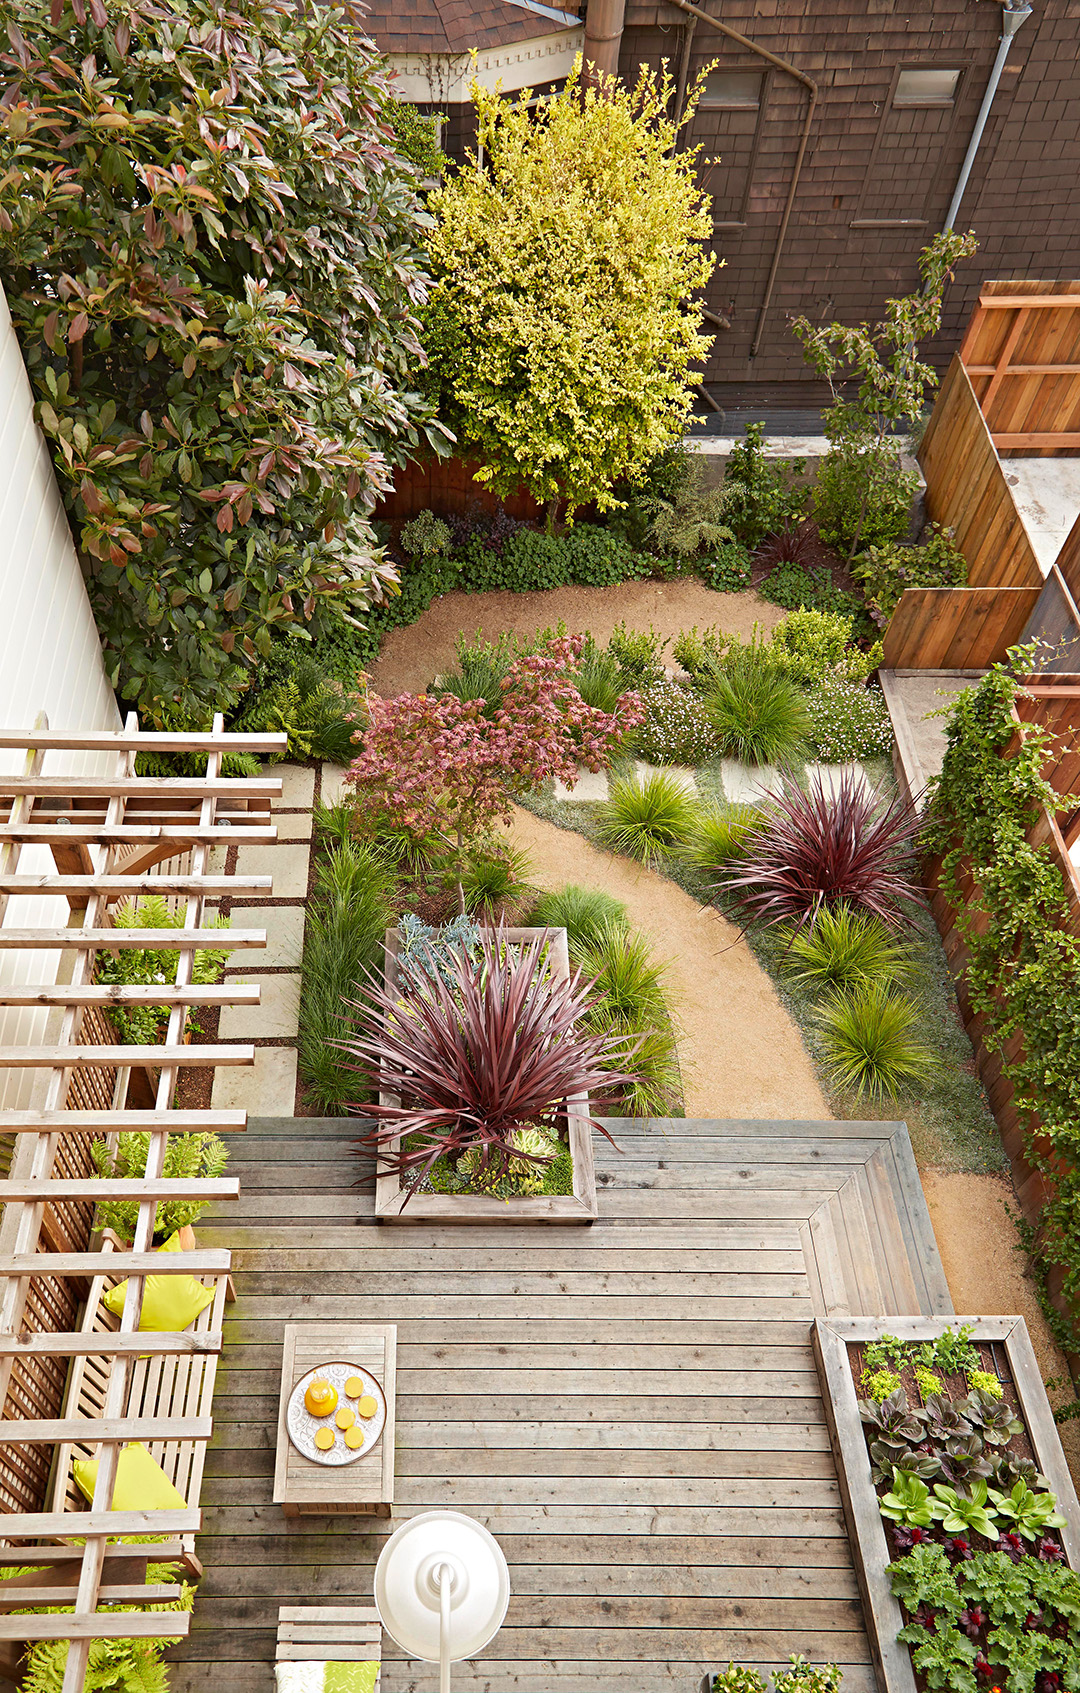 overhead view of garden with exterior pathway and deck